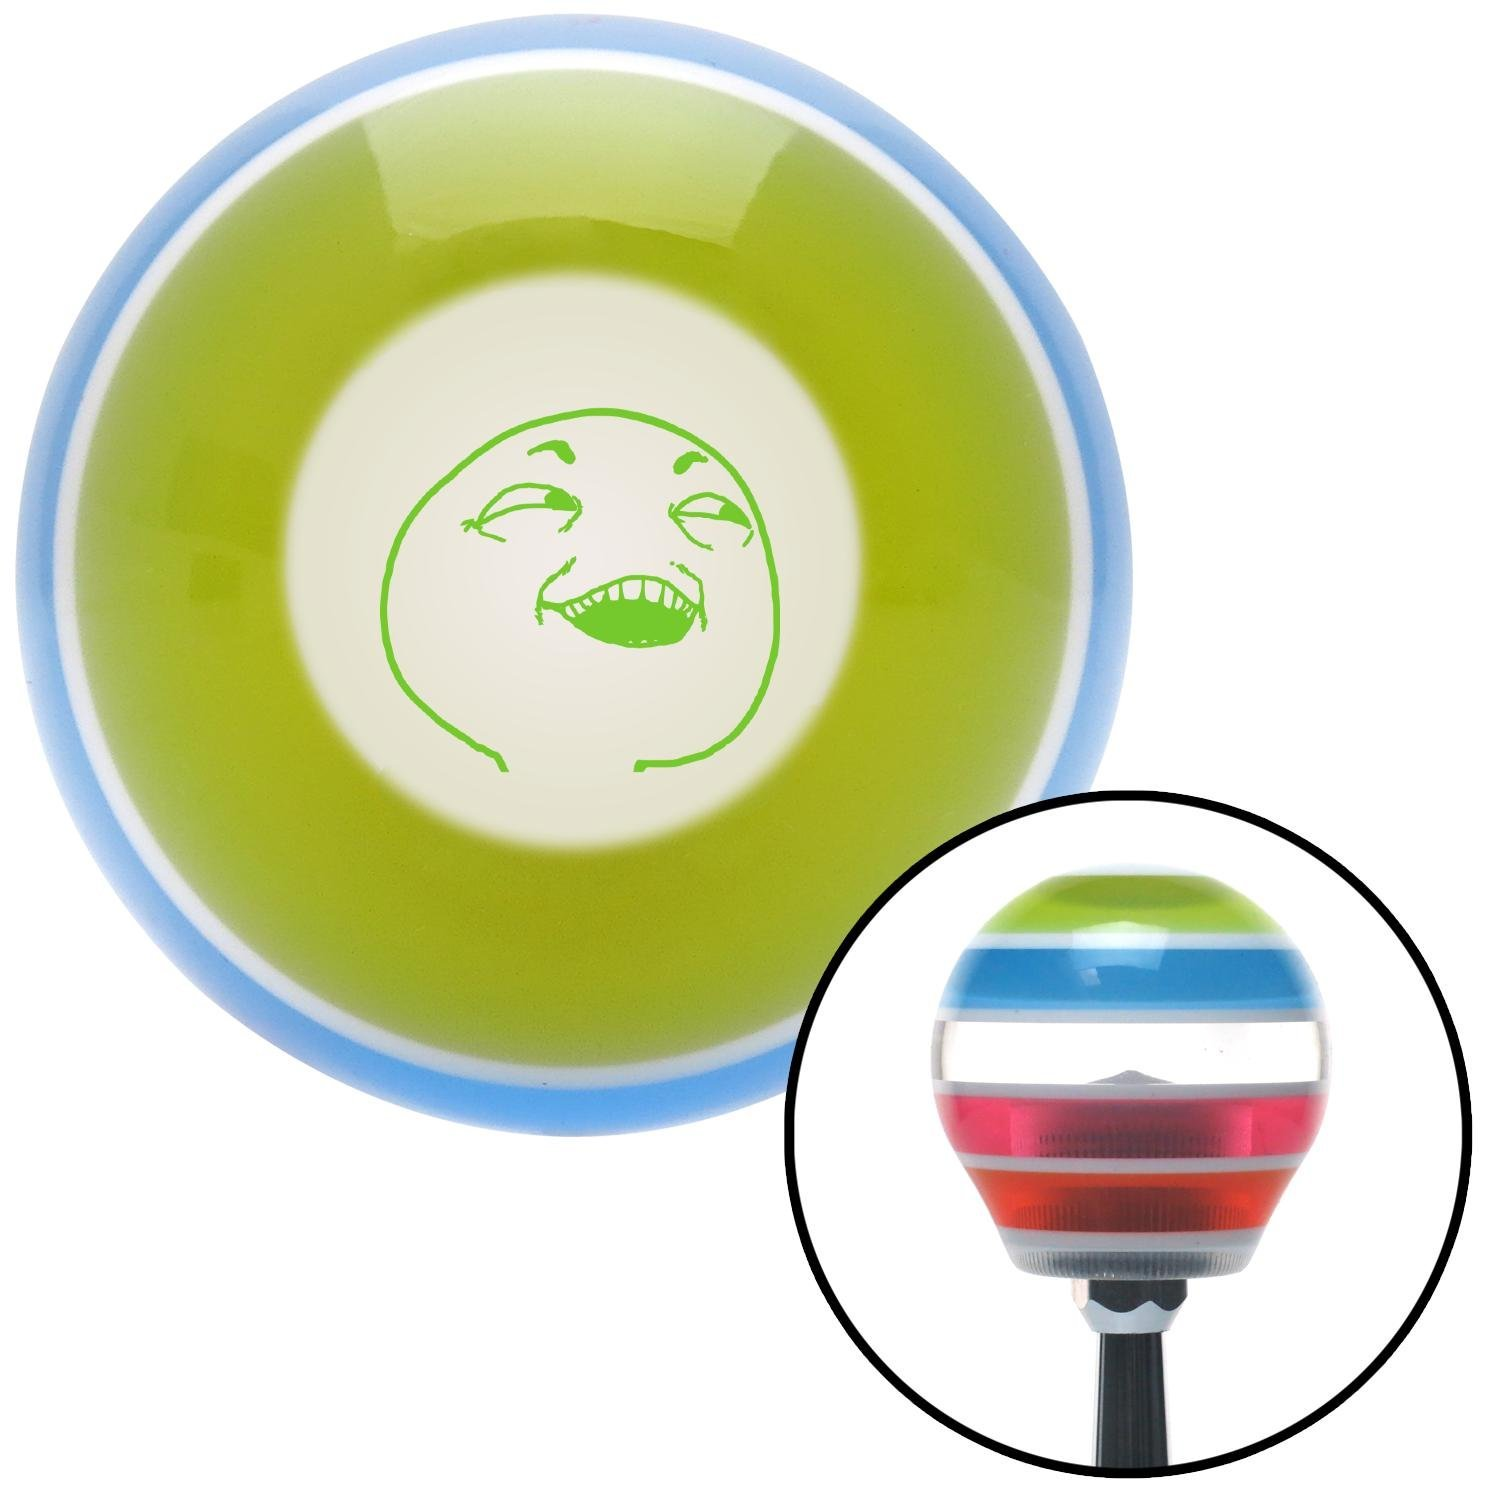 American Shifter 272562 Green What You Did There Stripe Shift Knob with M16 x 1.5 Insert